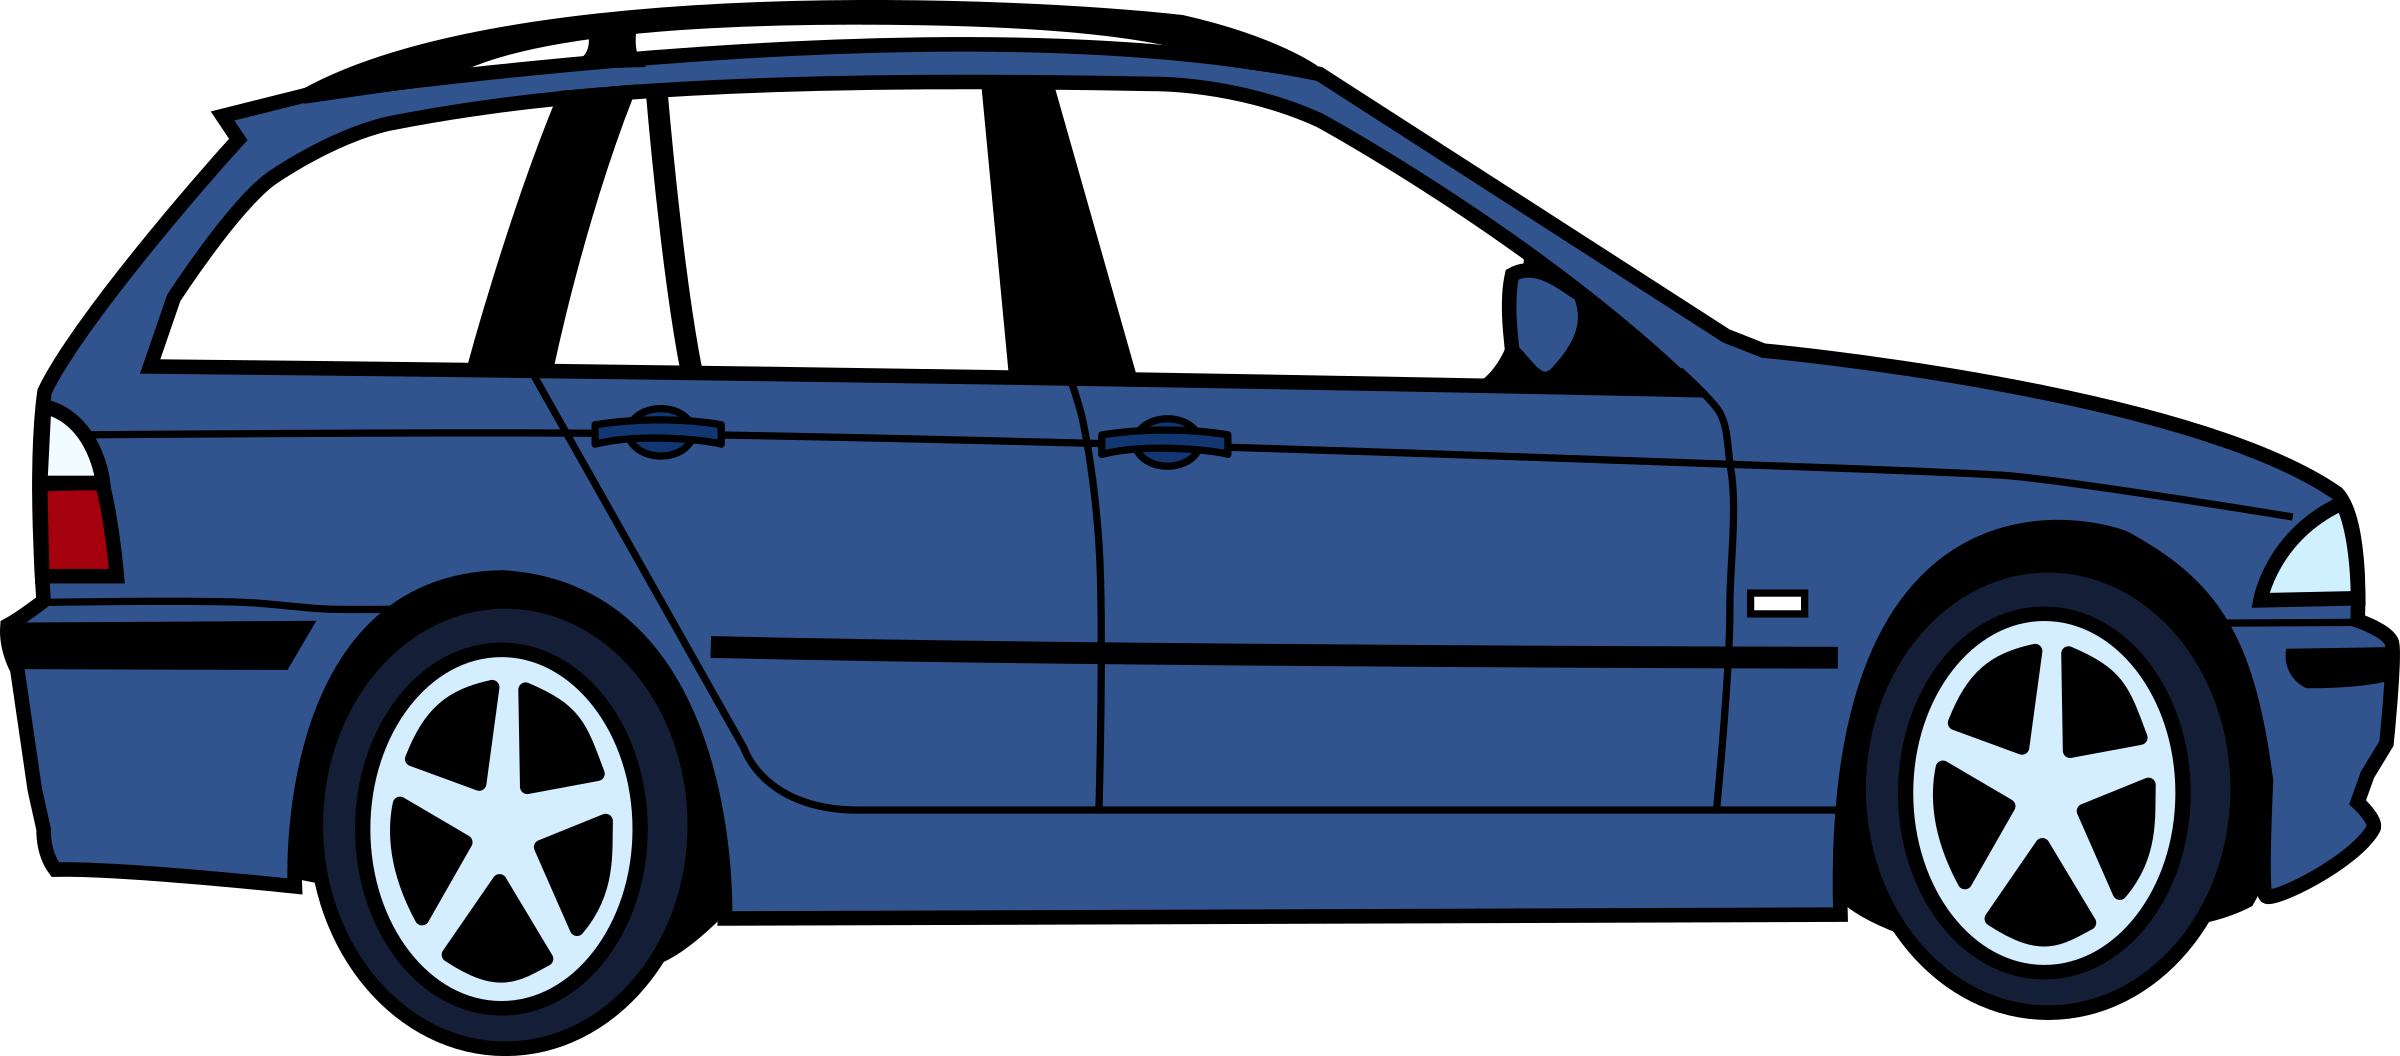 Fundraising clipart animated. Car animation free download